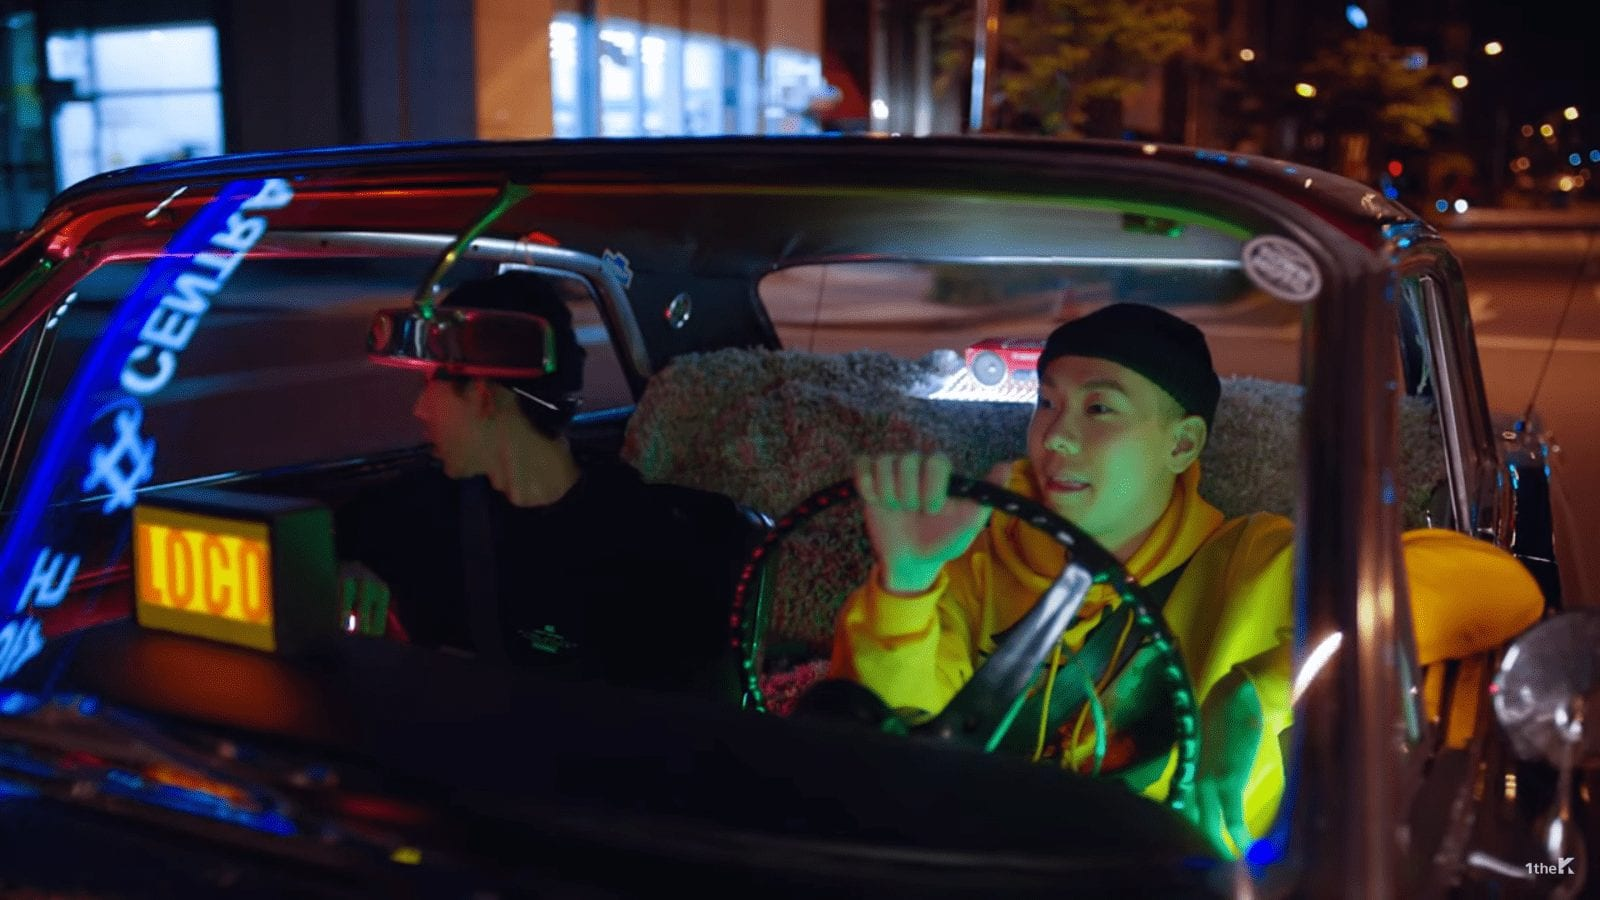 WATCH: Loco Drops Third New MV In Less Than One Week